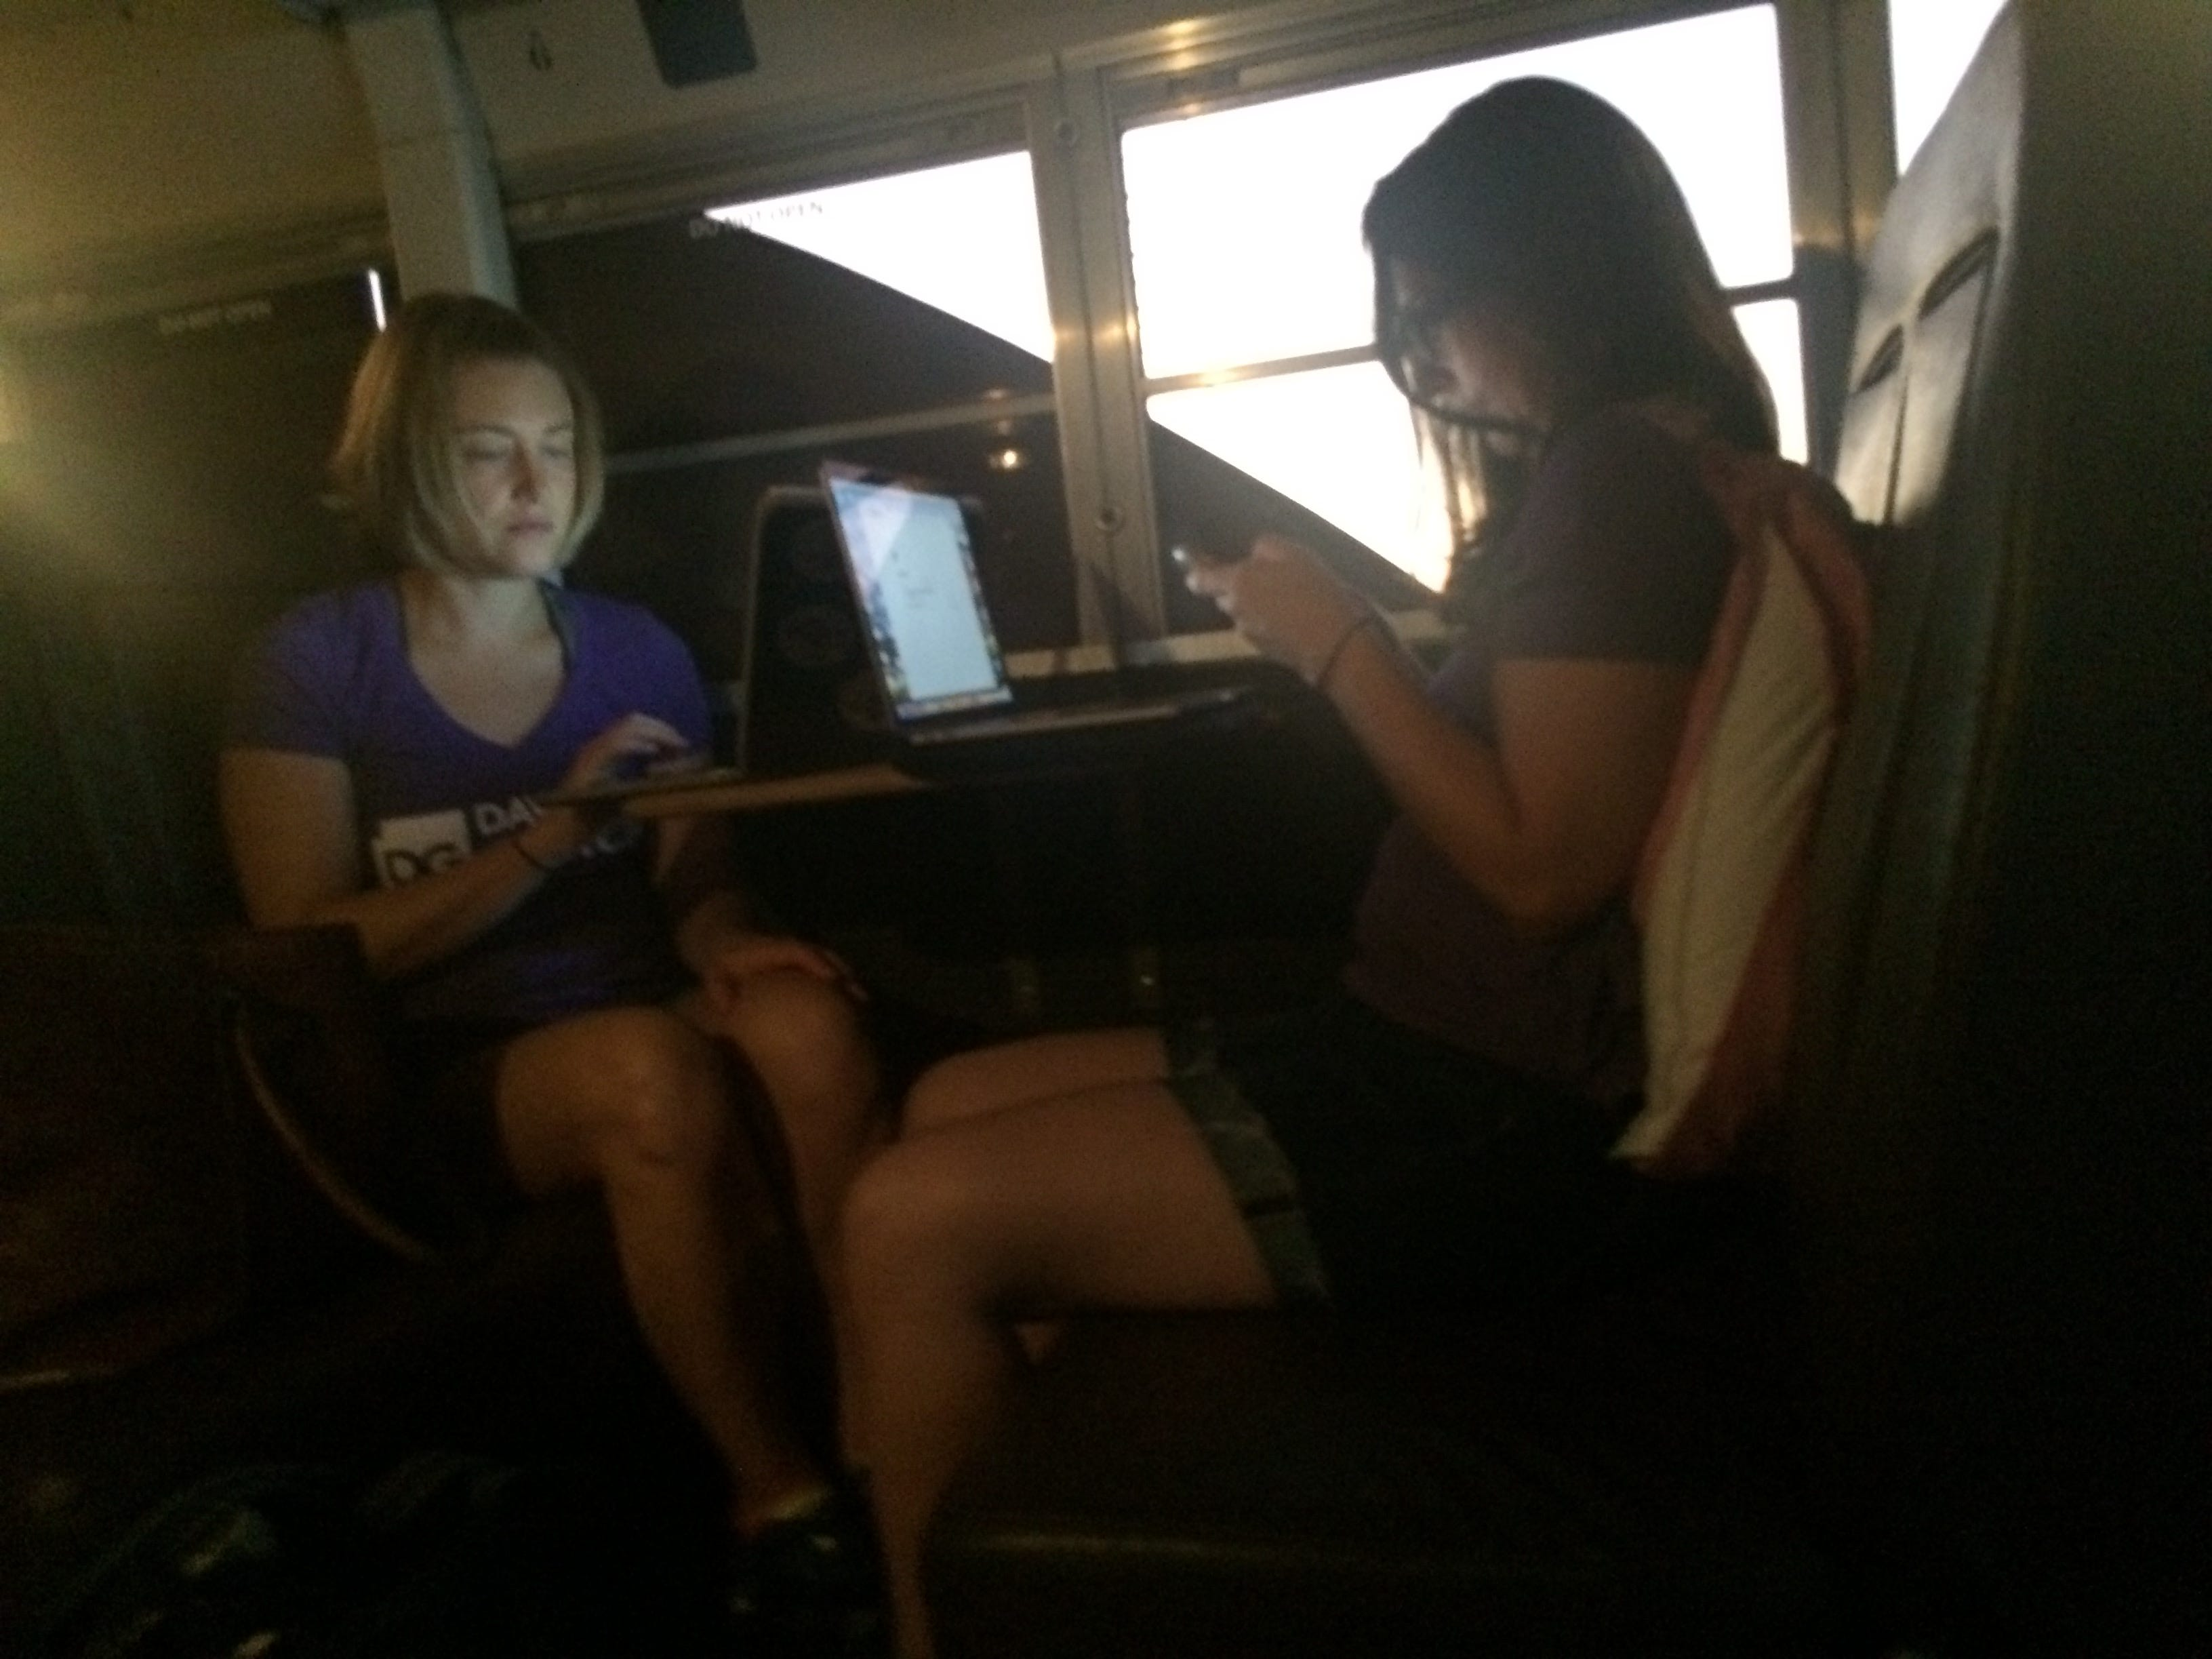 Staff members for the David Garcia gubernatorial campaign, Meghan Gutekunst (left), fundraising manager, and Sarah Elliott, communications director, work on laptops and cellphones during a trip to Douglas on Aug. 19, 2018. Garcia converted a school bus for campaign use.